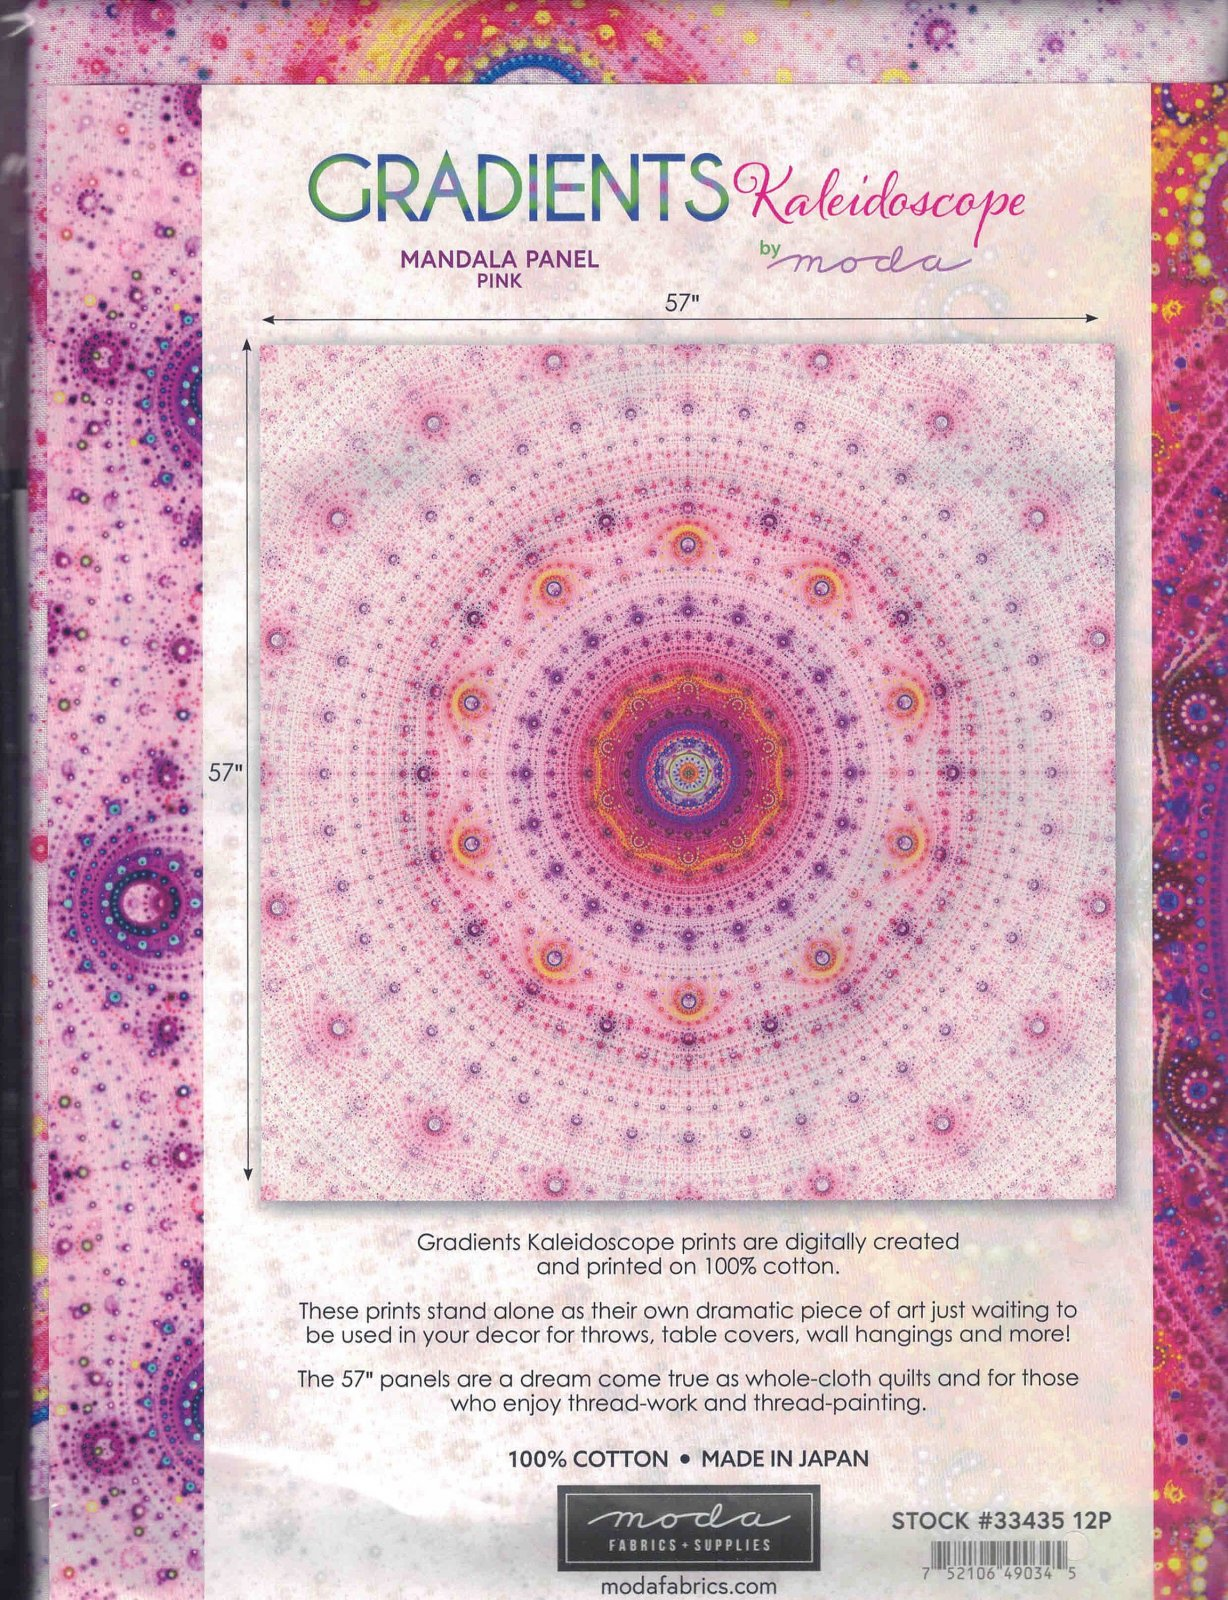 Gradients Kaleidoscope Panel Pink